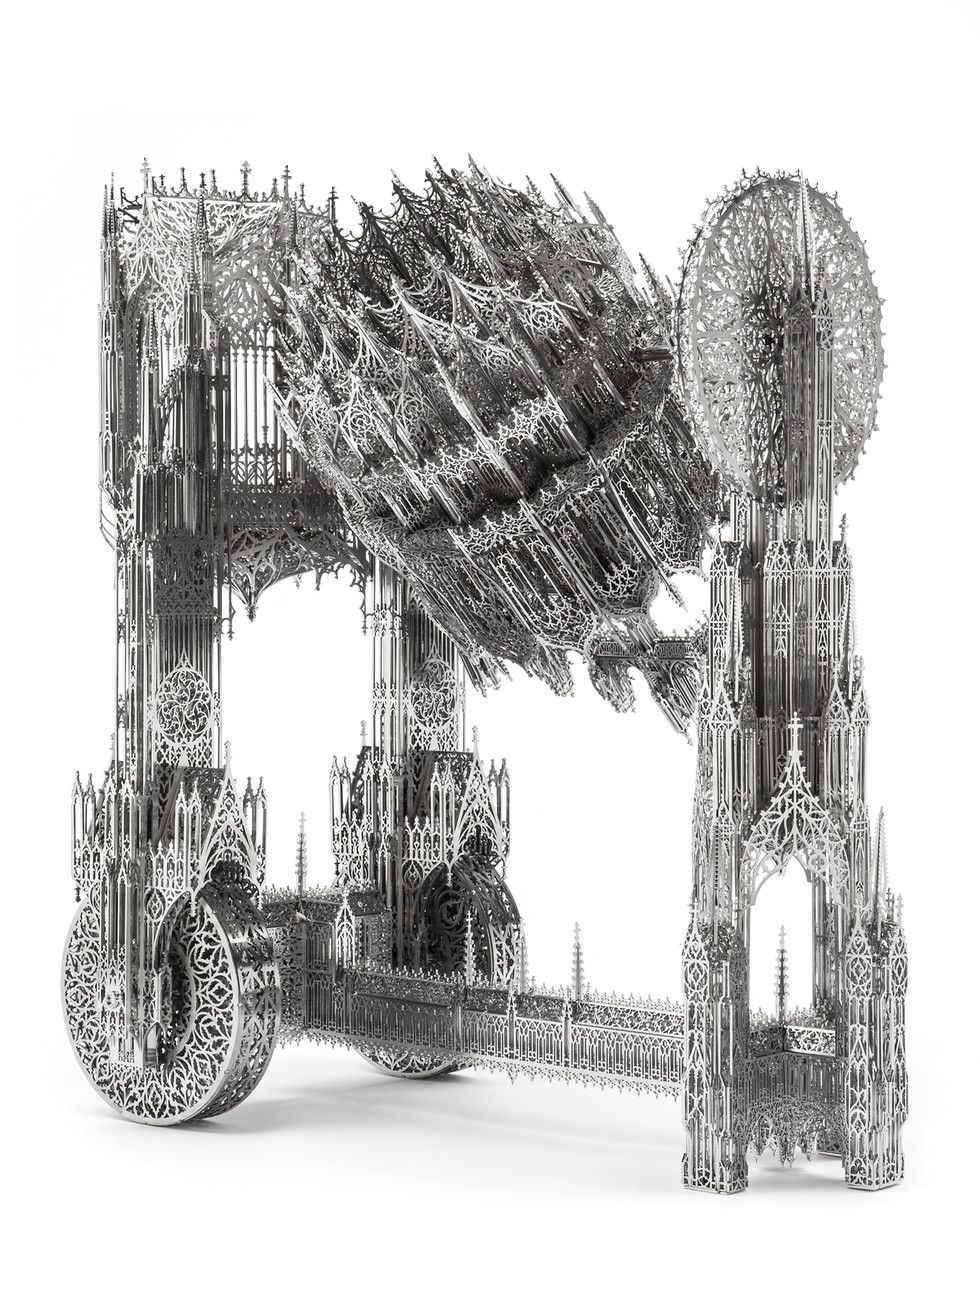 Wim Delvoye, Concrete Mixer (scale model), 2013. Laser-cut stainless steel.